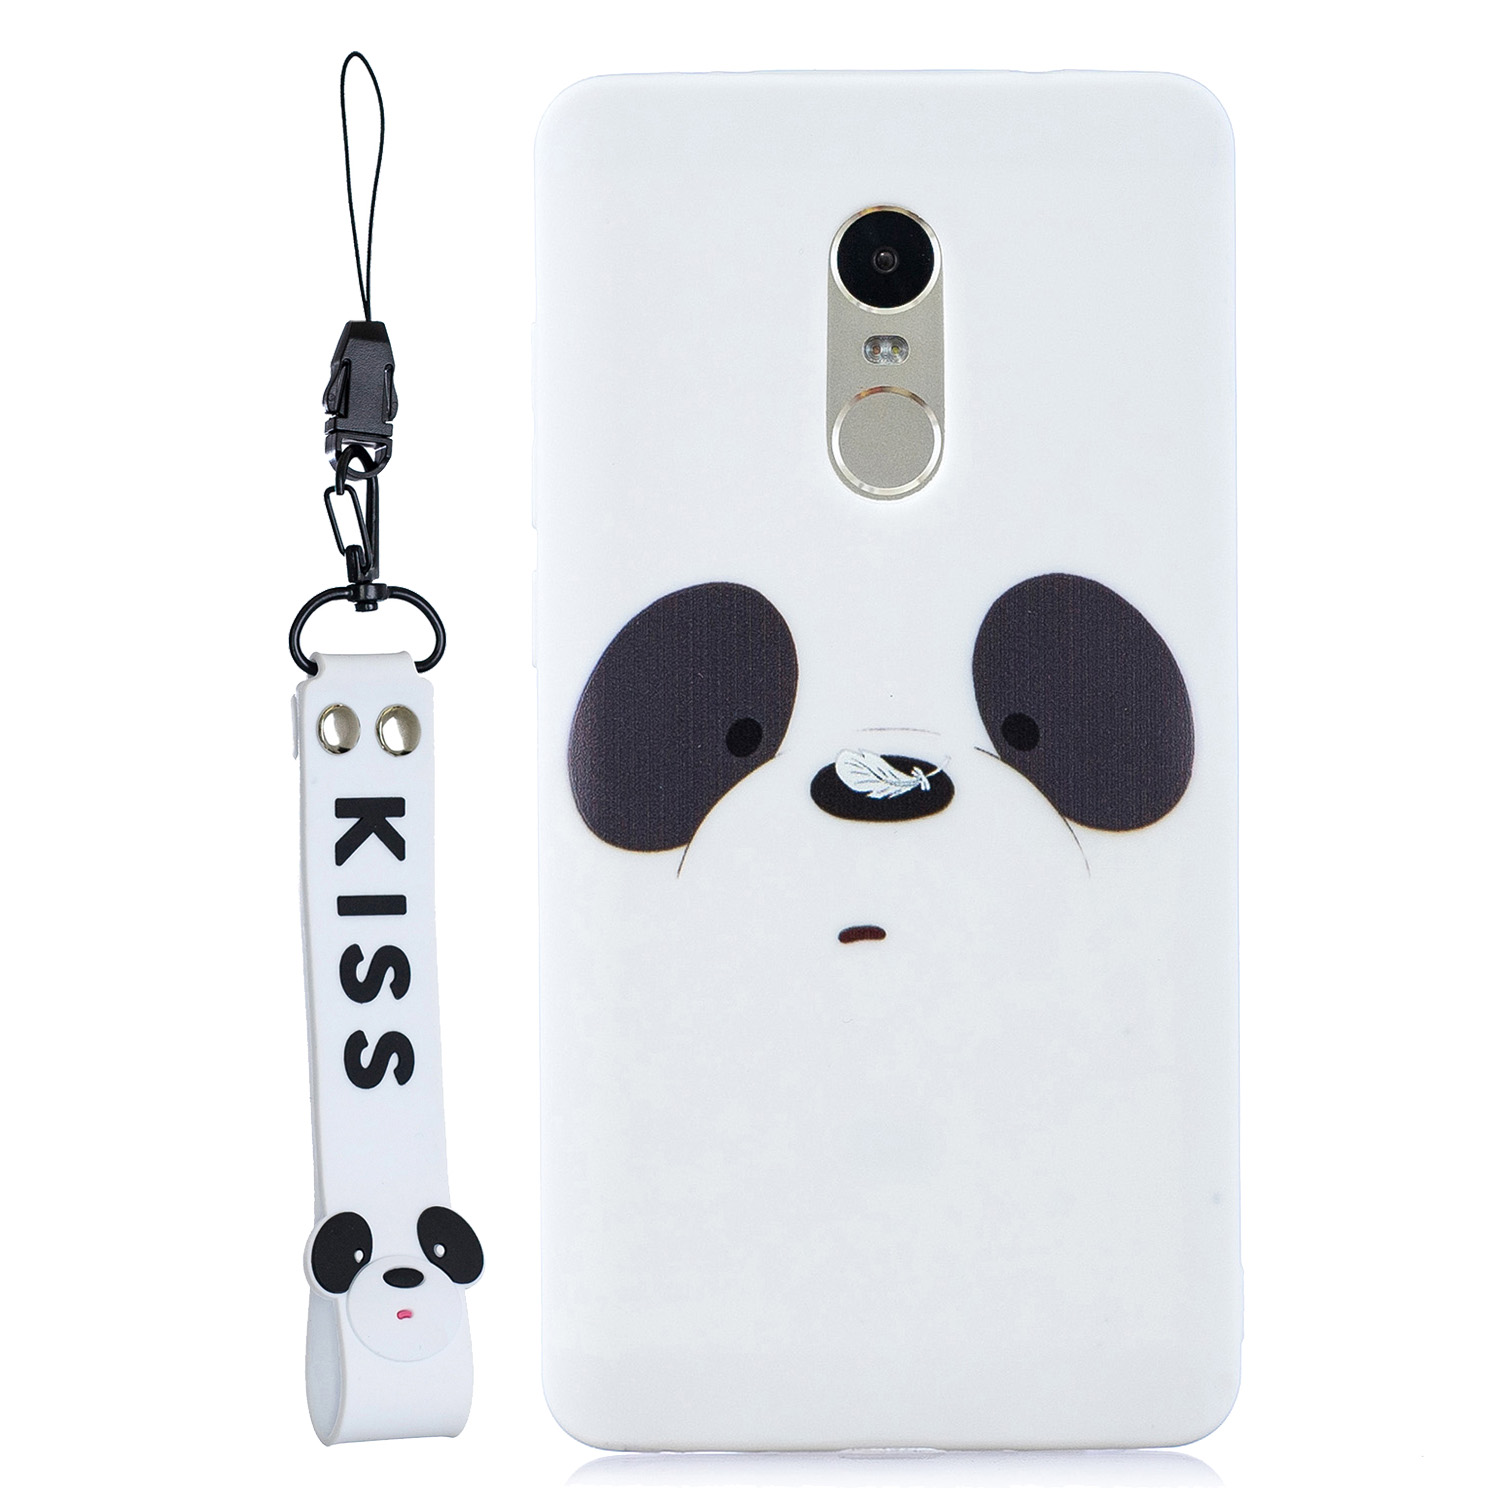 For Redmi note 4X/NOTE 4 Cartoon Lovely Coloured Painted Soft TPU Back Cover Non-slip Shockproof Full Protective Case with Lanyard white